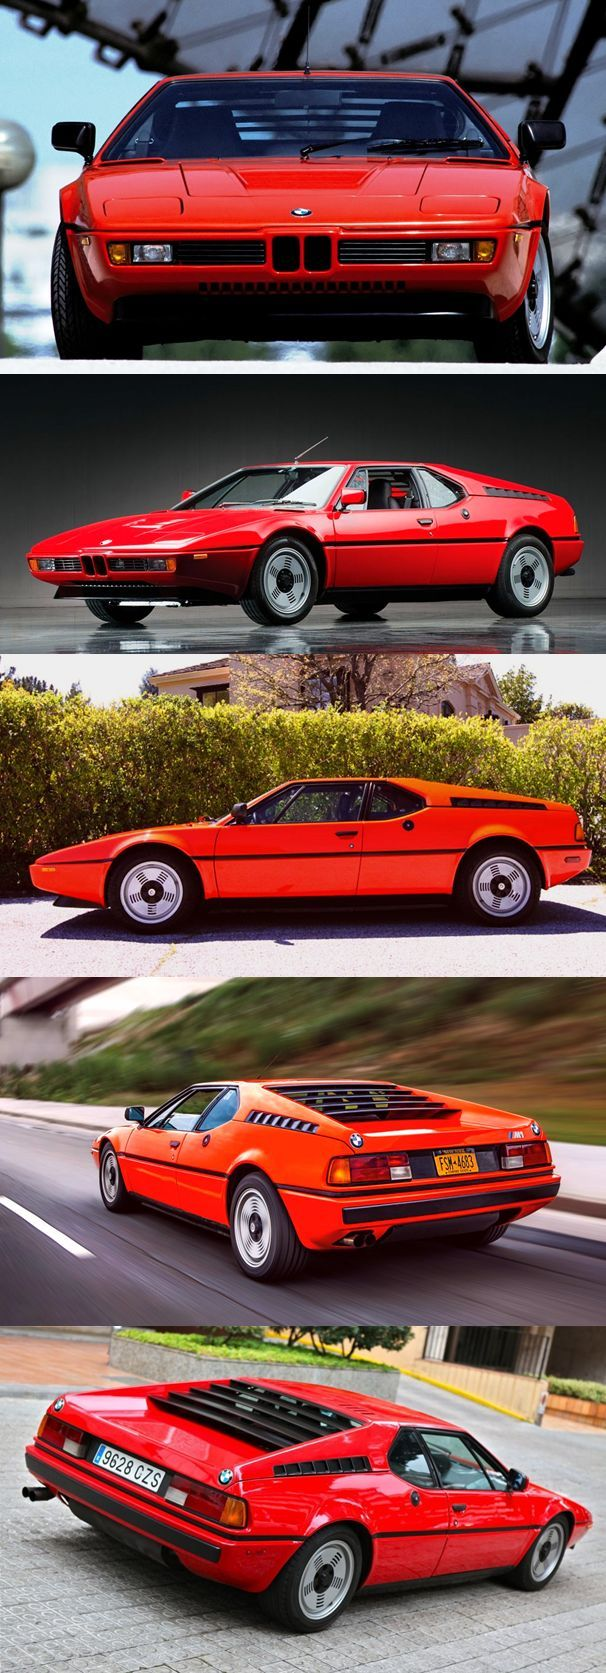 ✨ BMW M1,1978 - zweitüriges Coupé, 1978 bis 1981 insgesamt 460-mal produziert ════════════════════════════ http://www.alittlemarket.com/boutique/gaby_feerie-132444.html ☞ Gαвy-Féerιe ѕυr ALιттleMαrĸeт   https://www.etsy.com/shop/frenchjewelryvintage?ref=l2-shopheader-name ☞ FrenchJewelryVintage on Etsy http://gabyfeeriefr.tumblr.com/archive ☞ Bijoux / Jewelry sur Tumblr